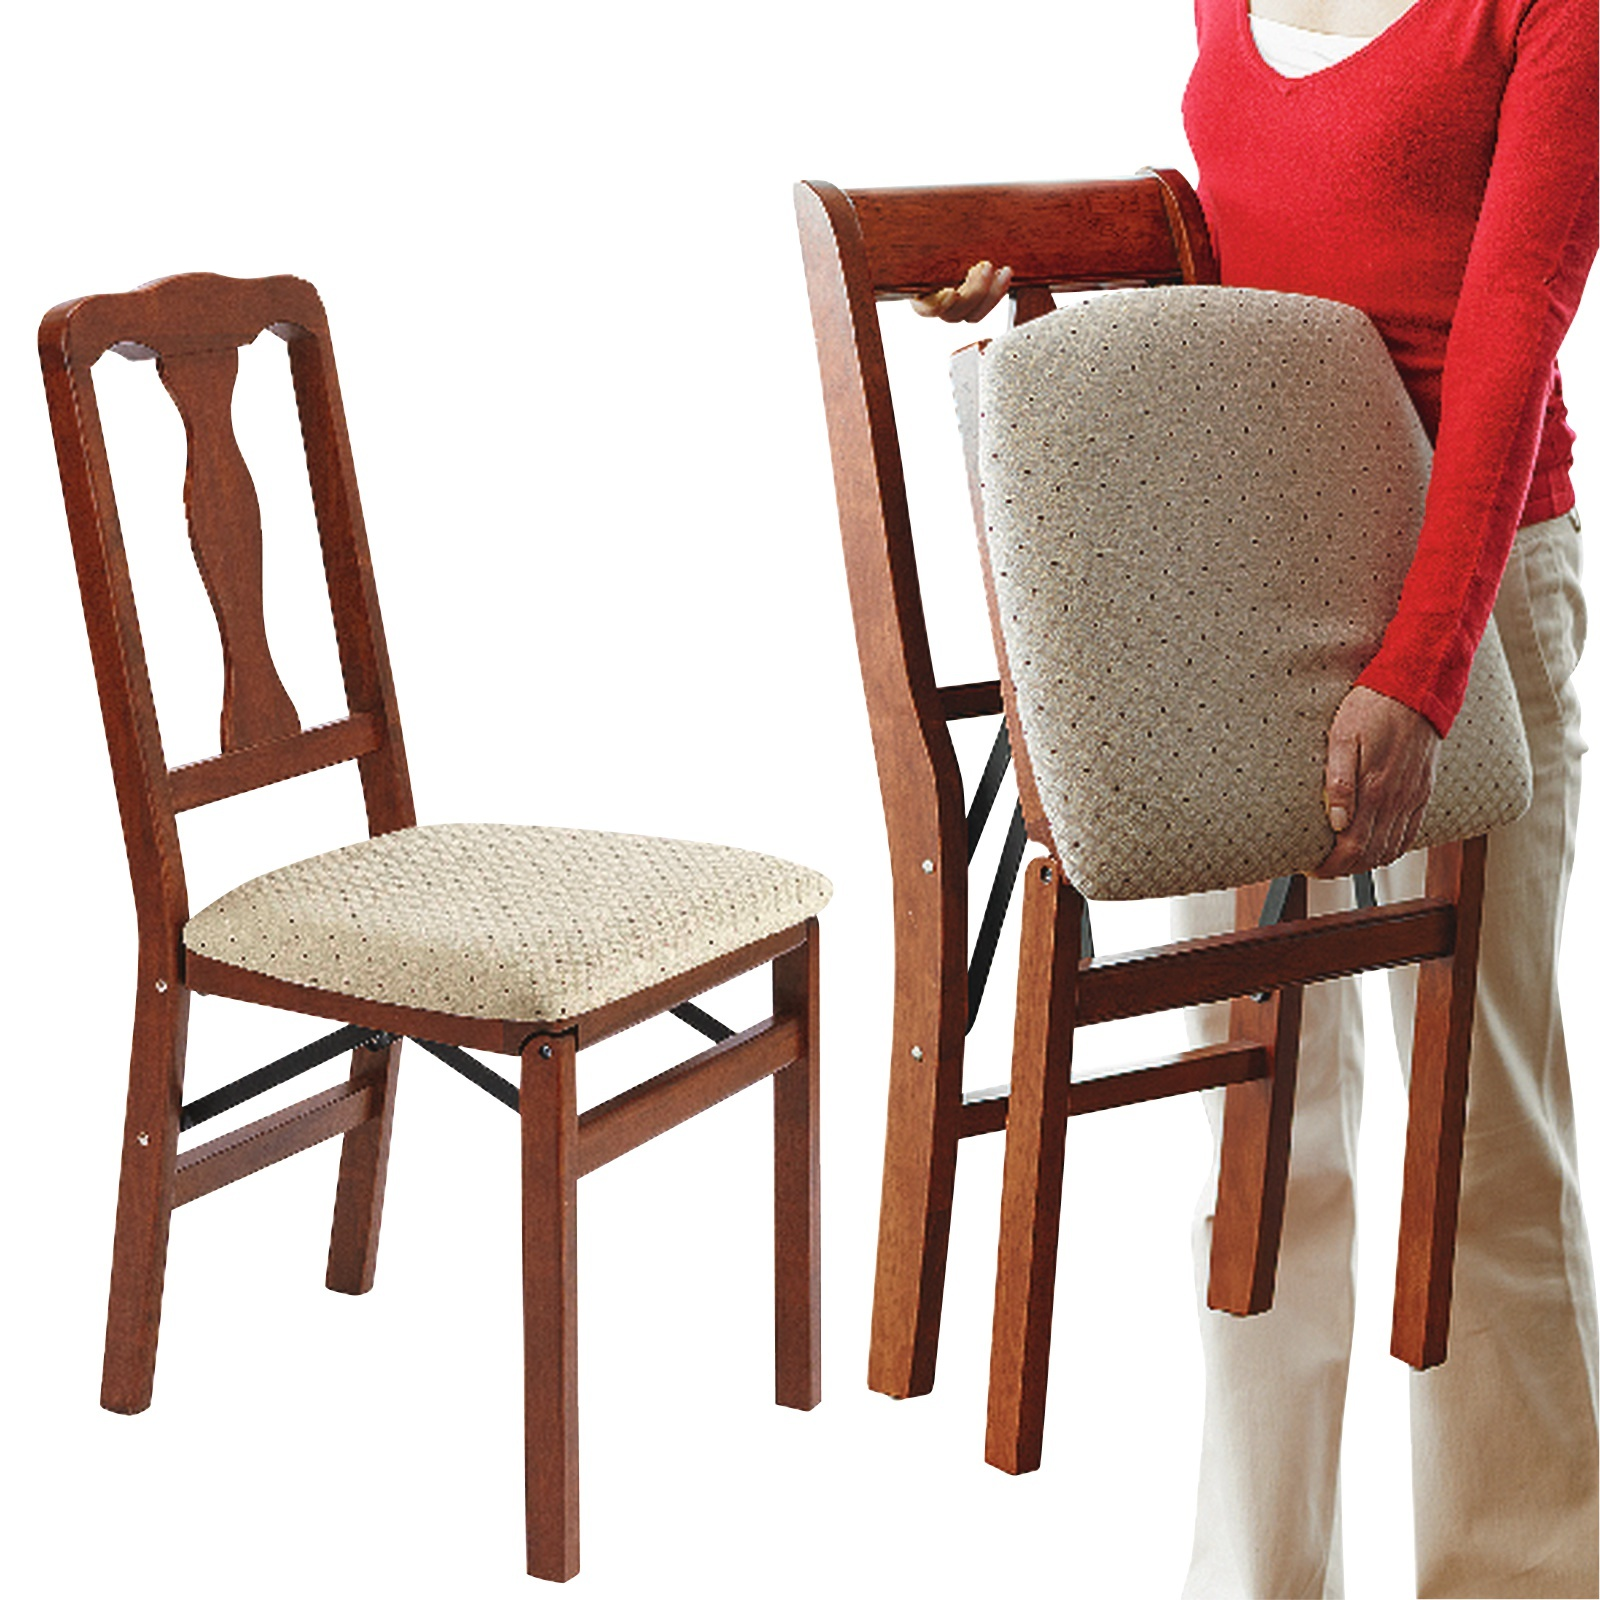 Peachy Queen Anne Folding Dining Chairs 2Pcs Solid Hardwood Frame Cushioned Seat Pad Mahogany Theyellowbook Wood Chair Design Ideas Theyellowbookinfo